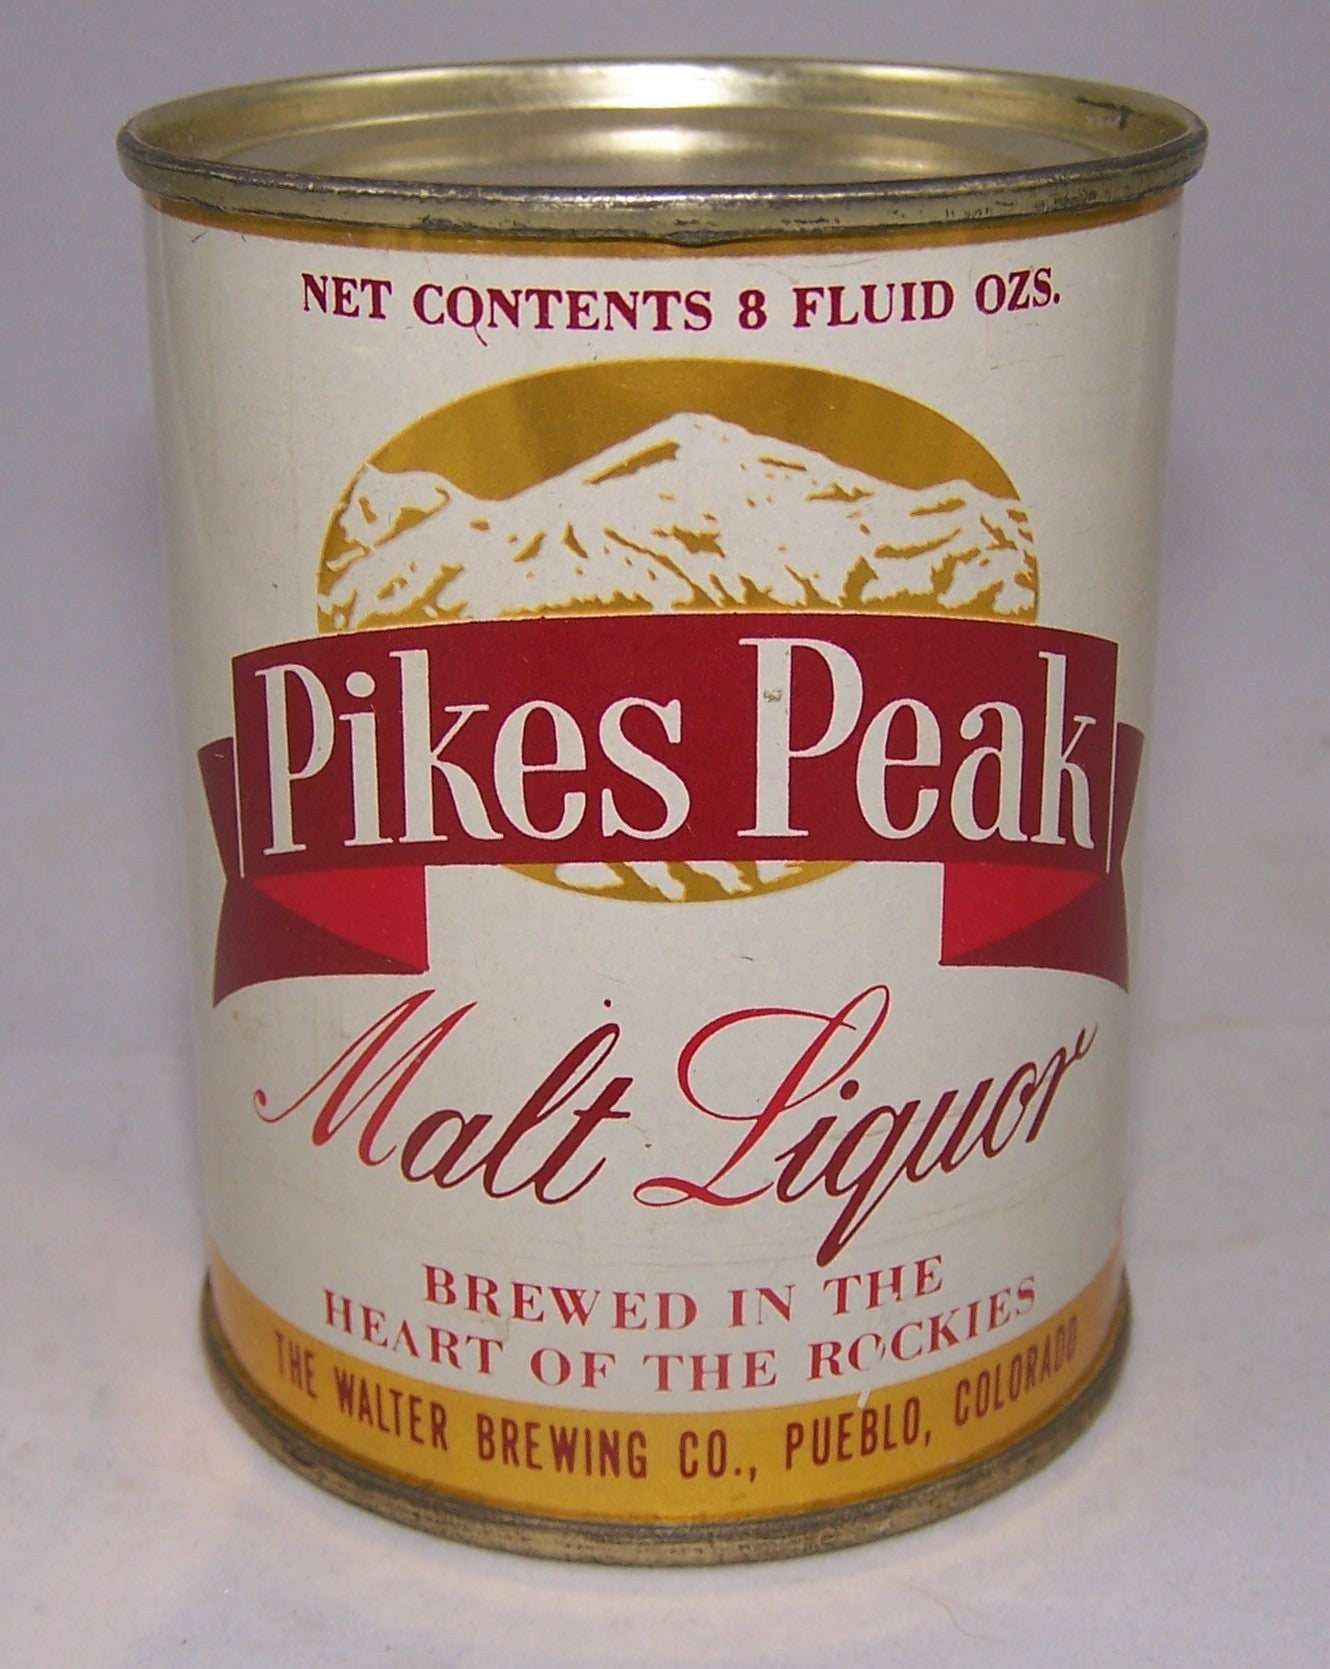 Pikes Peak Malt Liquor 8 ounce, USBC 242-7, Grade 1 to 1/1+Sold on 10/20/15